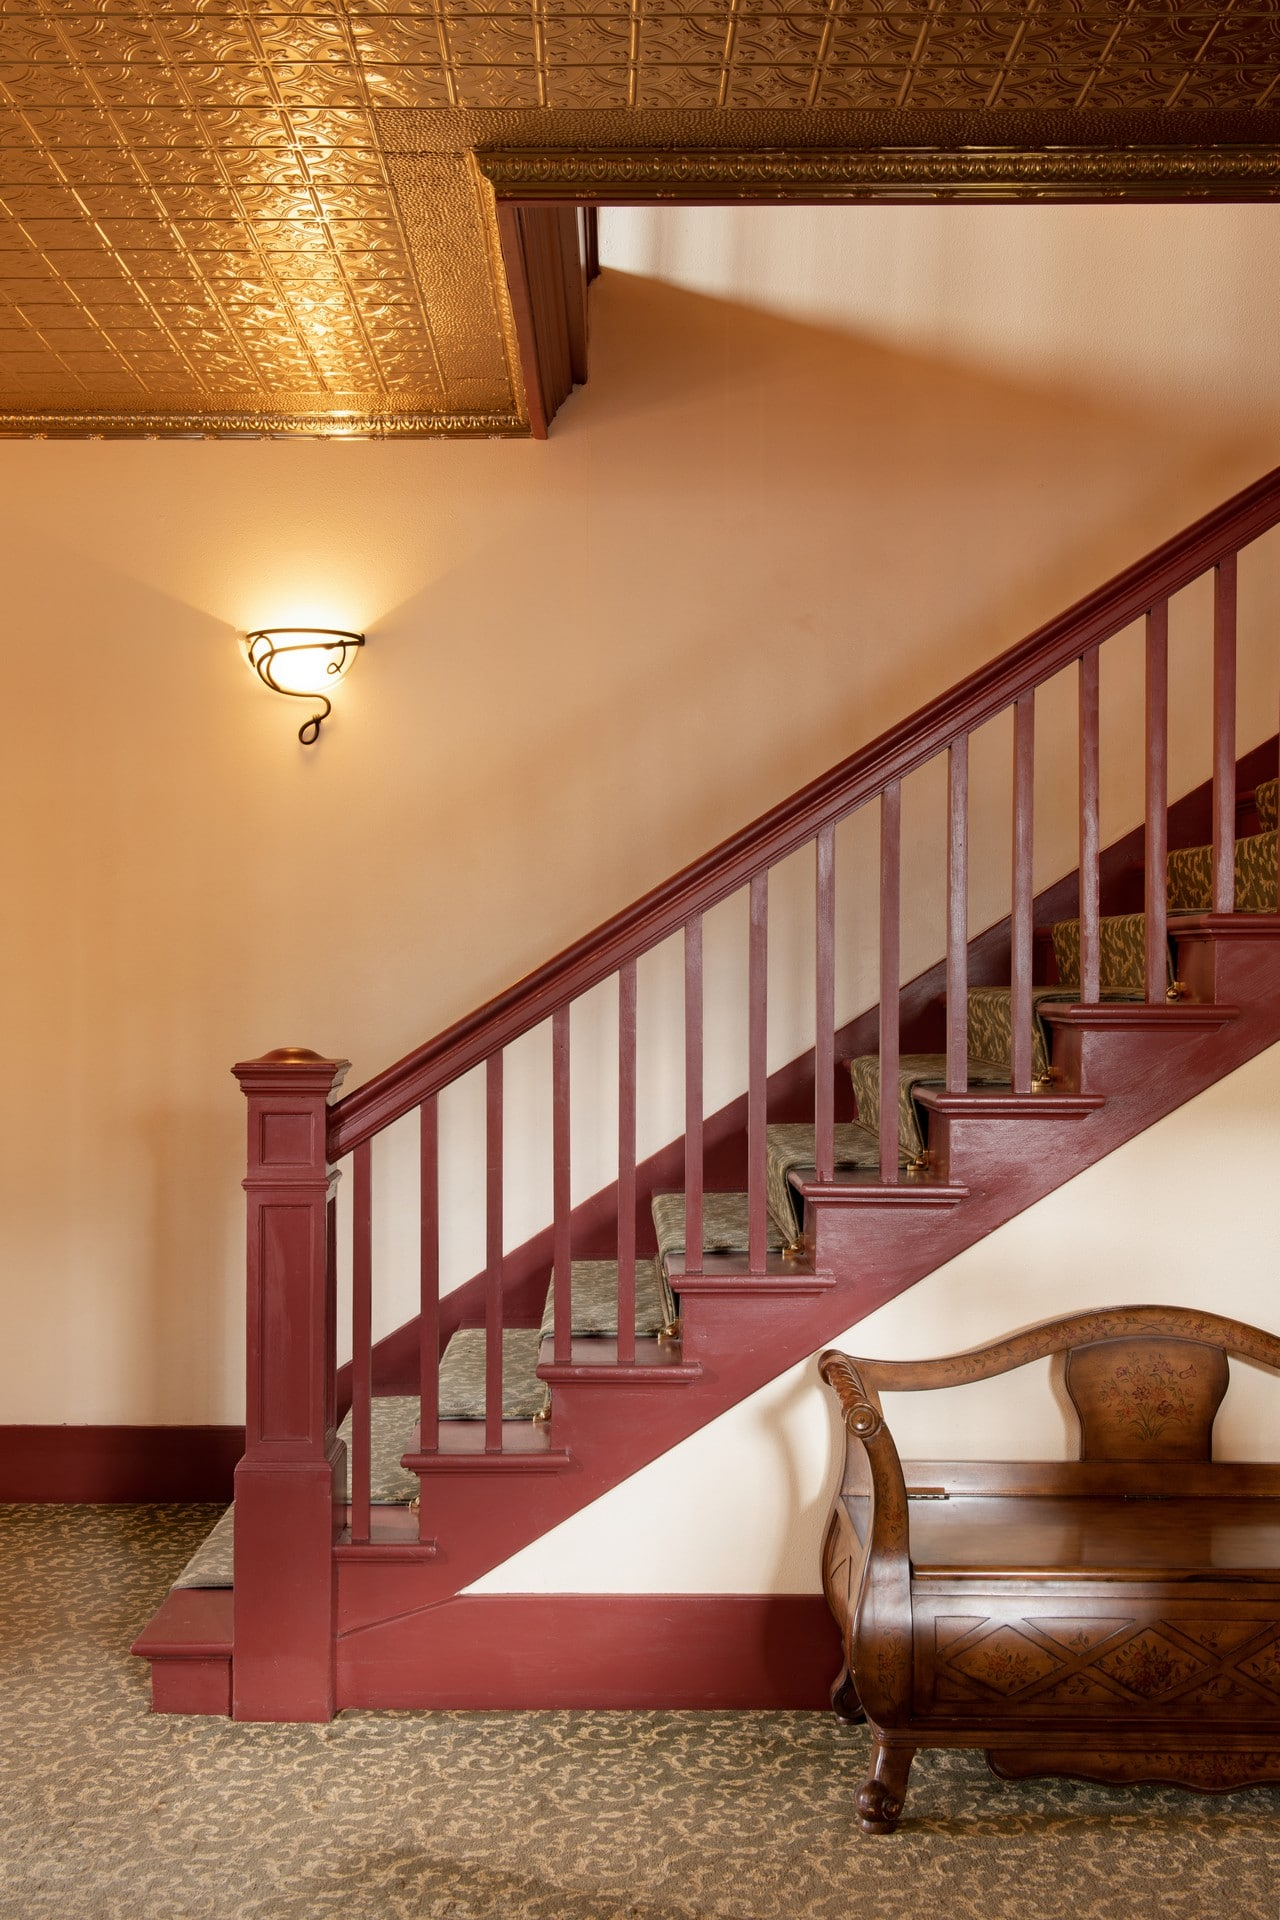 Beautiful ceilings and staircase at the Chamberlin inn